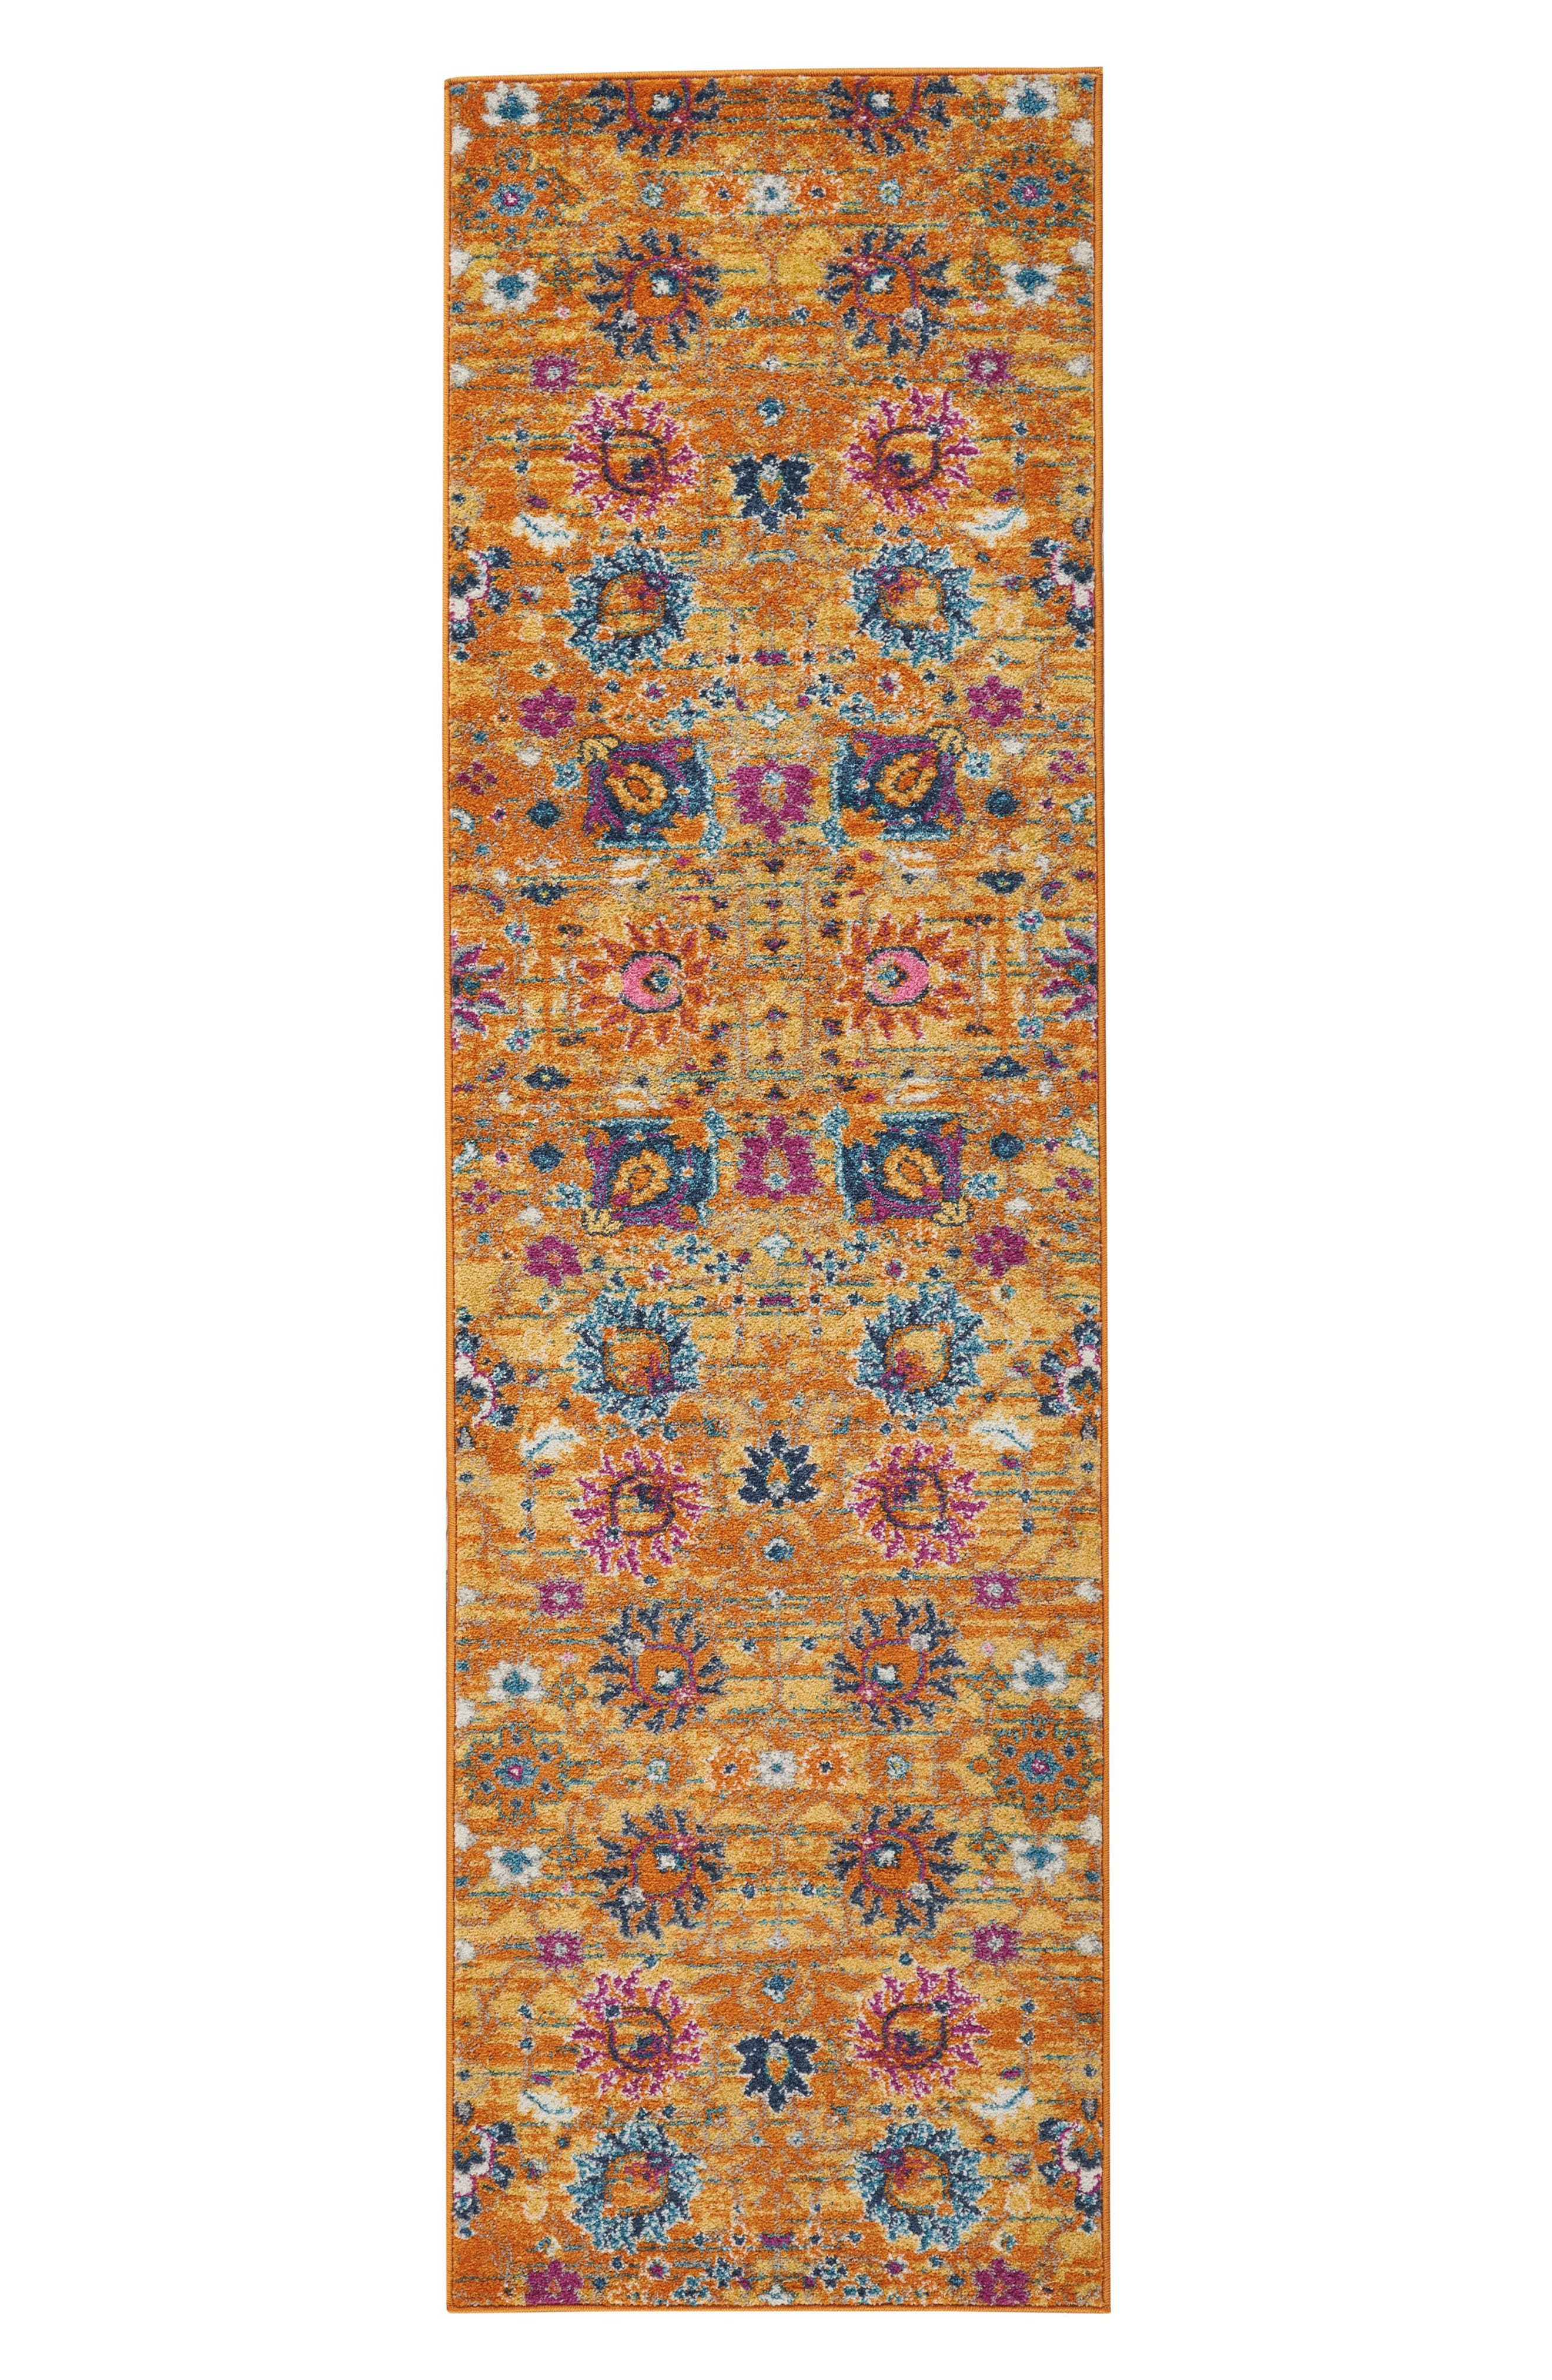 Sunburst Rug,                         Main,                         color, 800